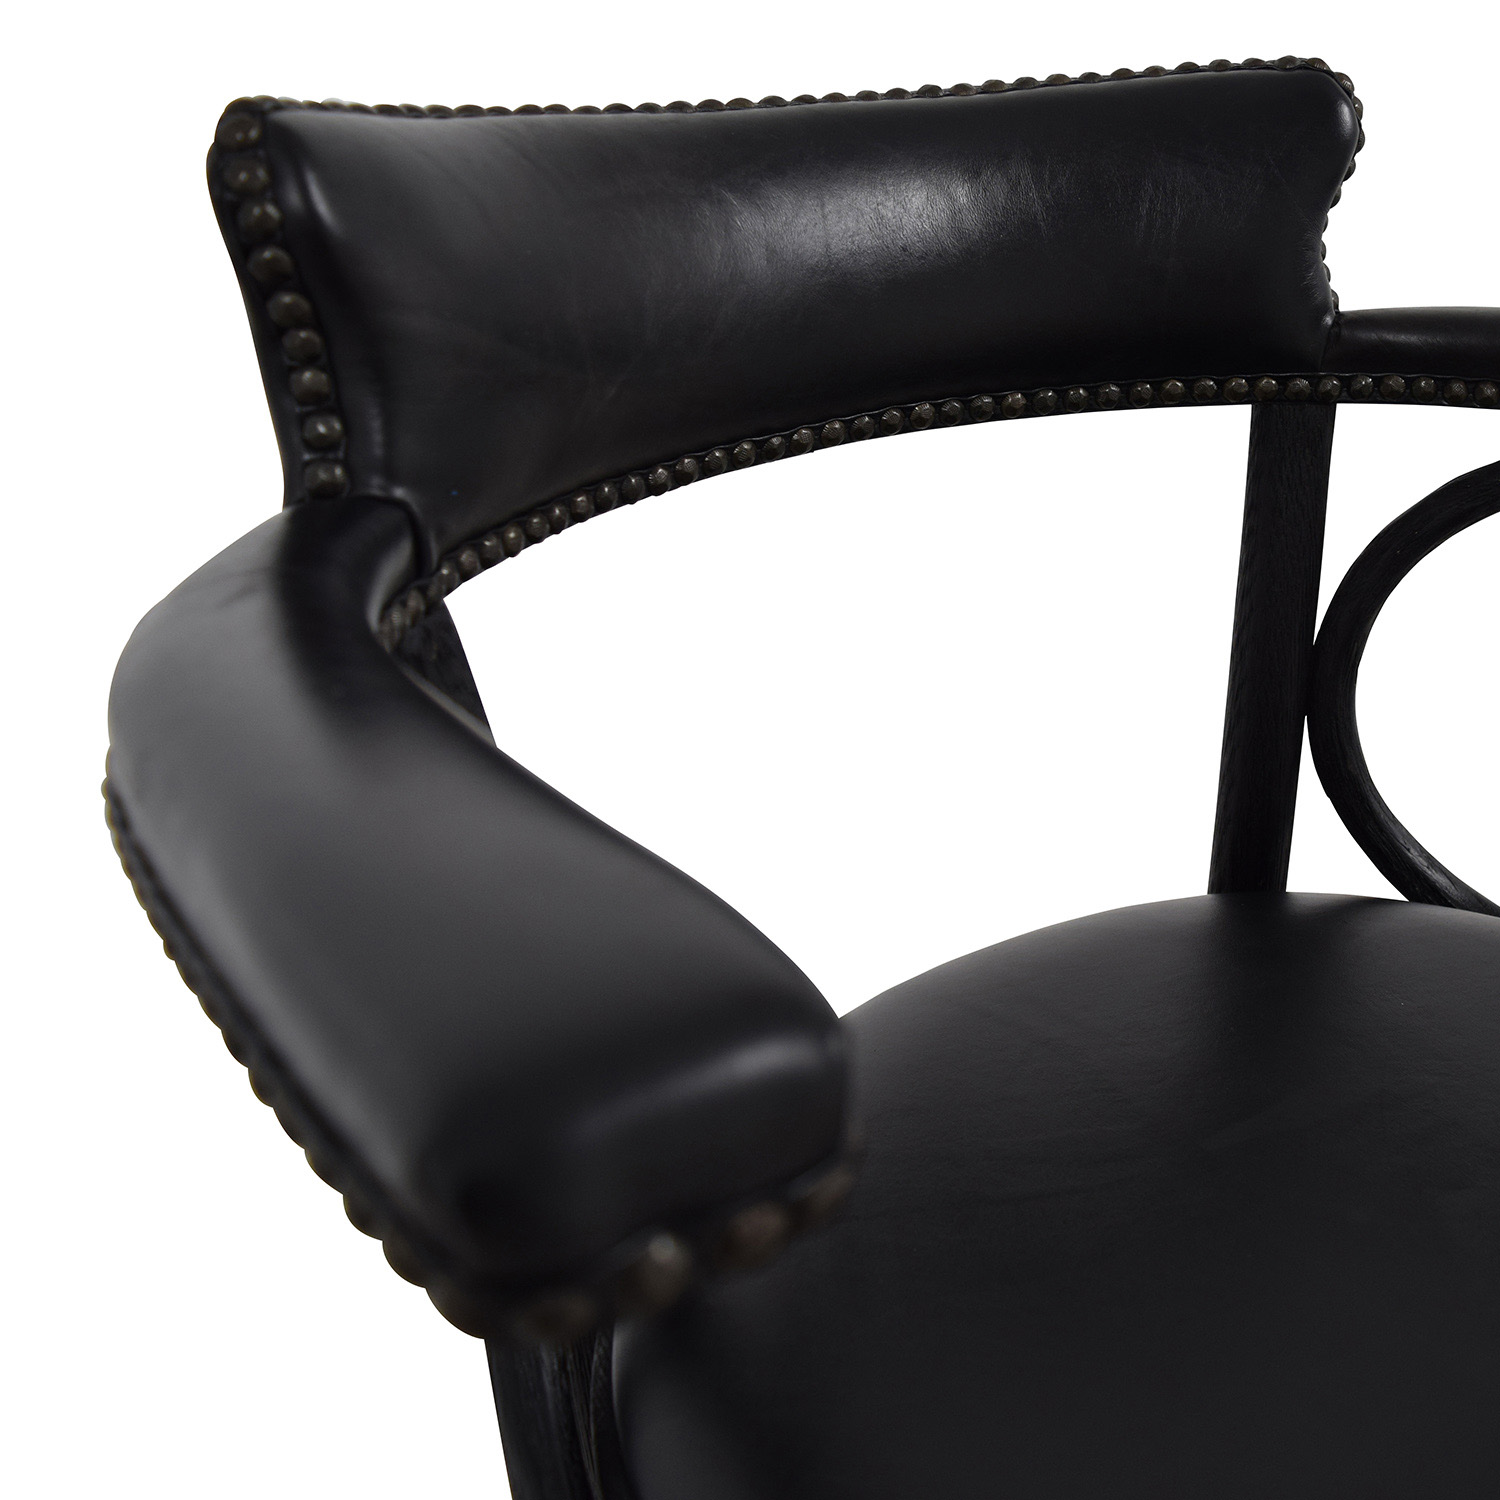 buy Restoration Hardware Restoration Hardware Vienna Cafe Leather Stool online